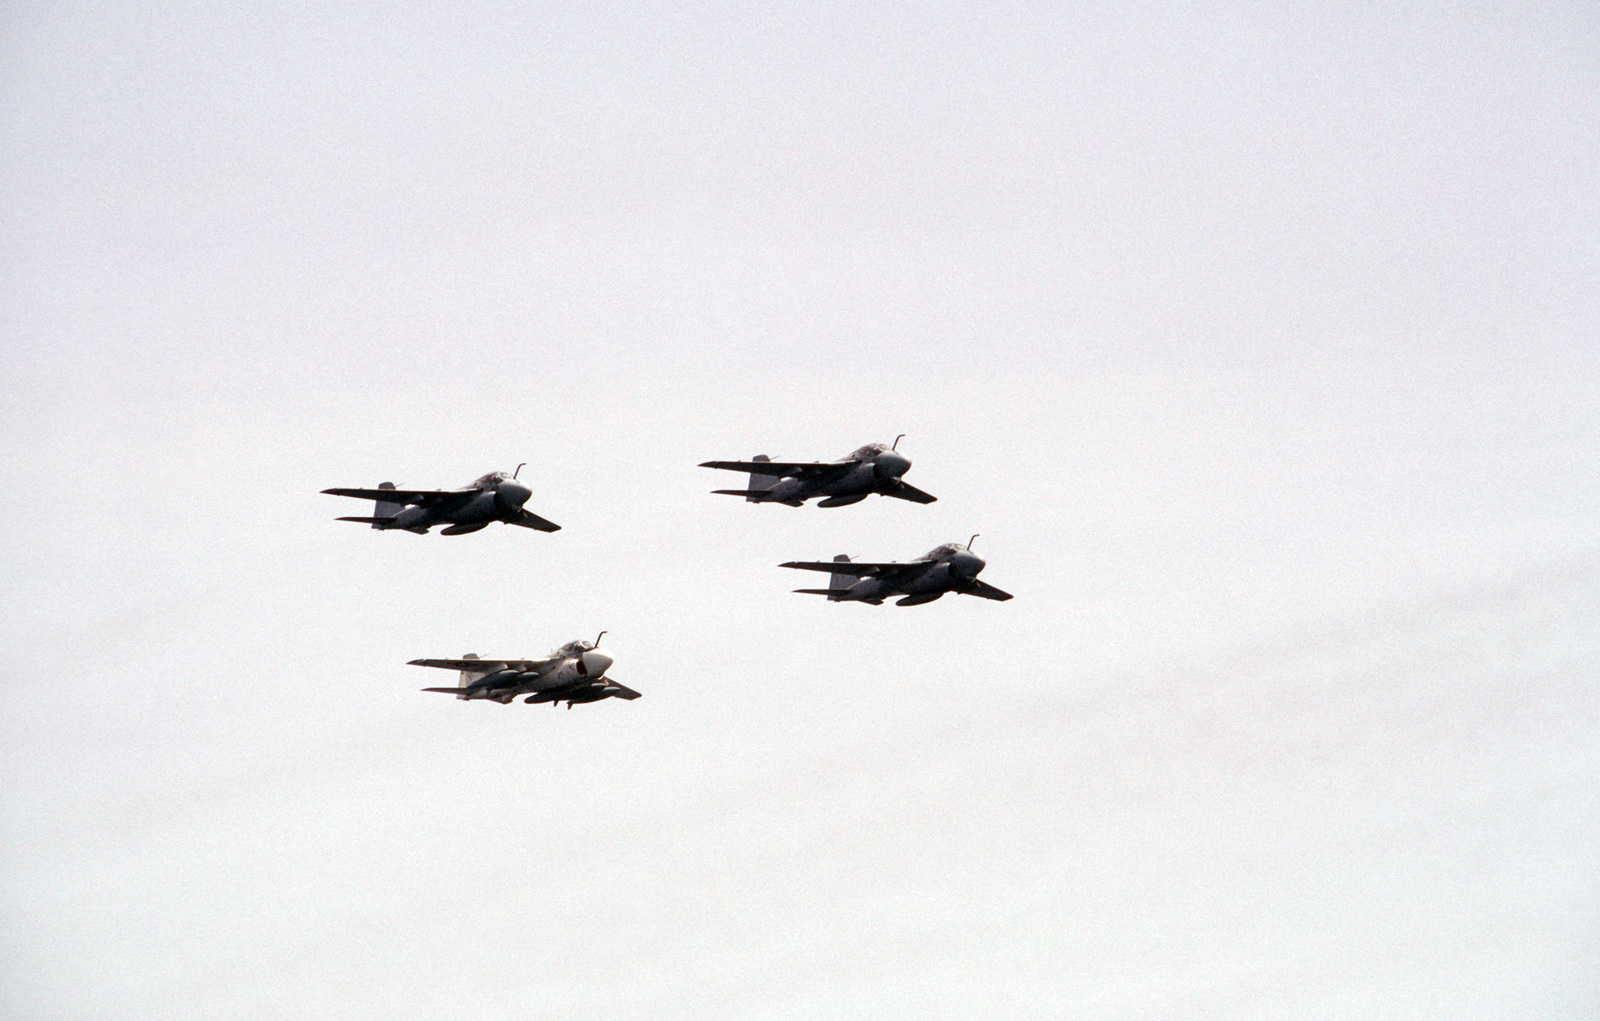 Three A-6E Intruder aircraft and a KA-6D Intruder fly in formation during an air show off the coast of Caracas, Venezuela.  The aircraft are assigned to the nuclear-powered aircraft carrier USS DWIGHT D. EISENHOWER (CVN 69)